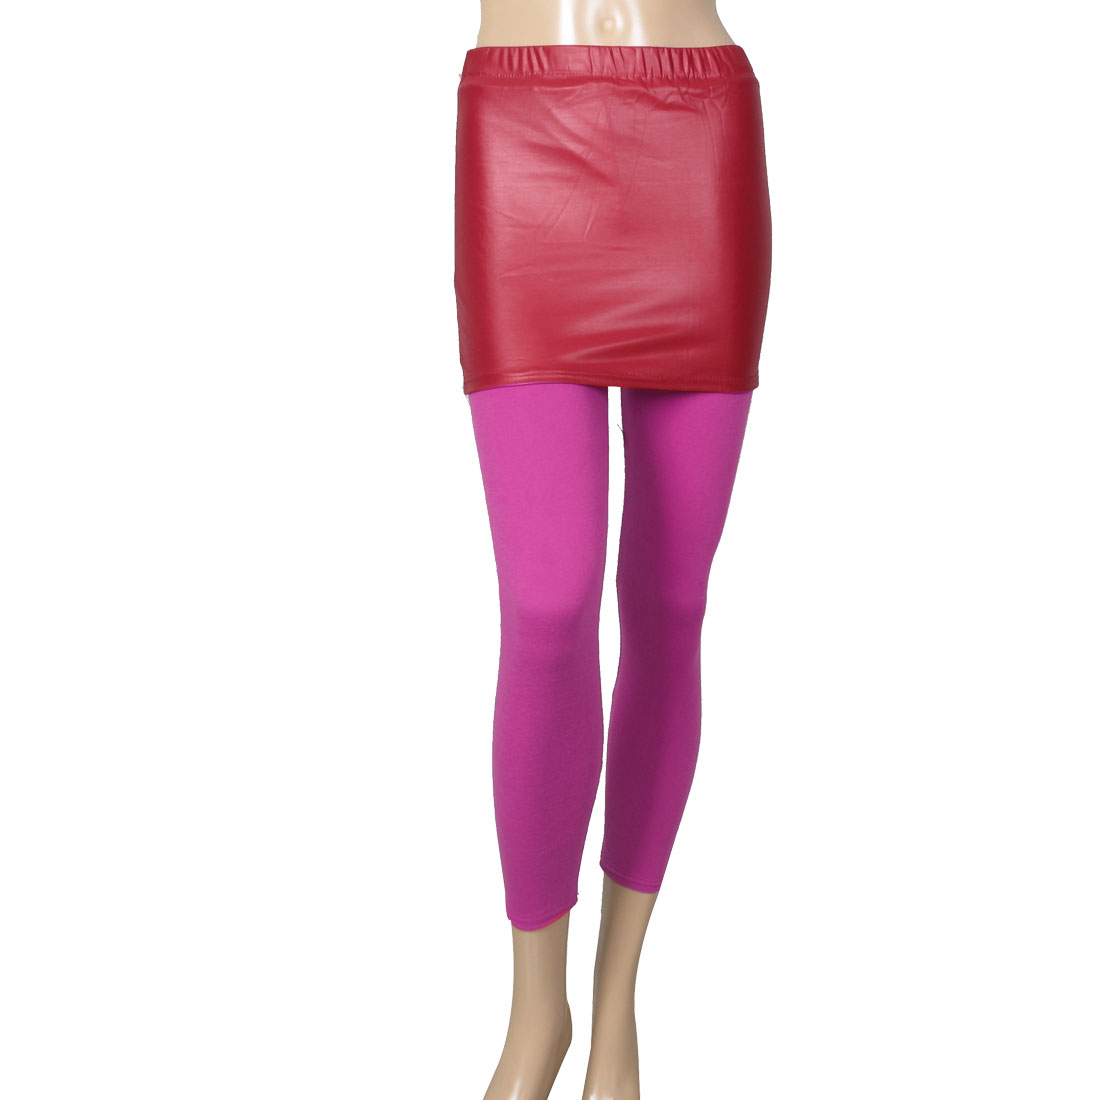 Fuchsia Faux Leather Detail Skinny Pantskirt Leggings for Women XS